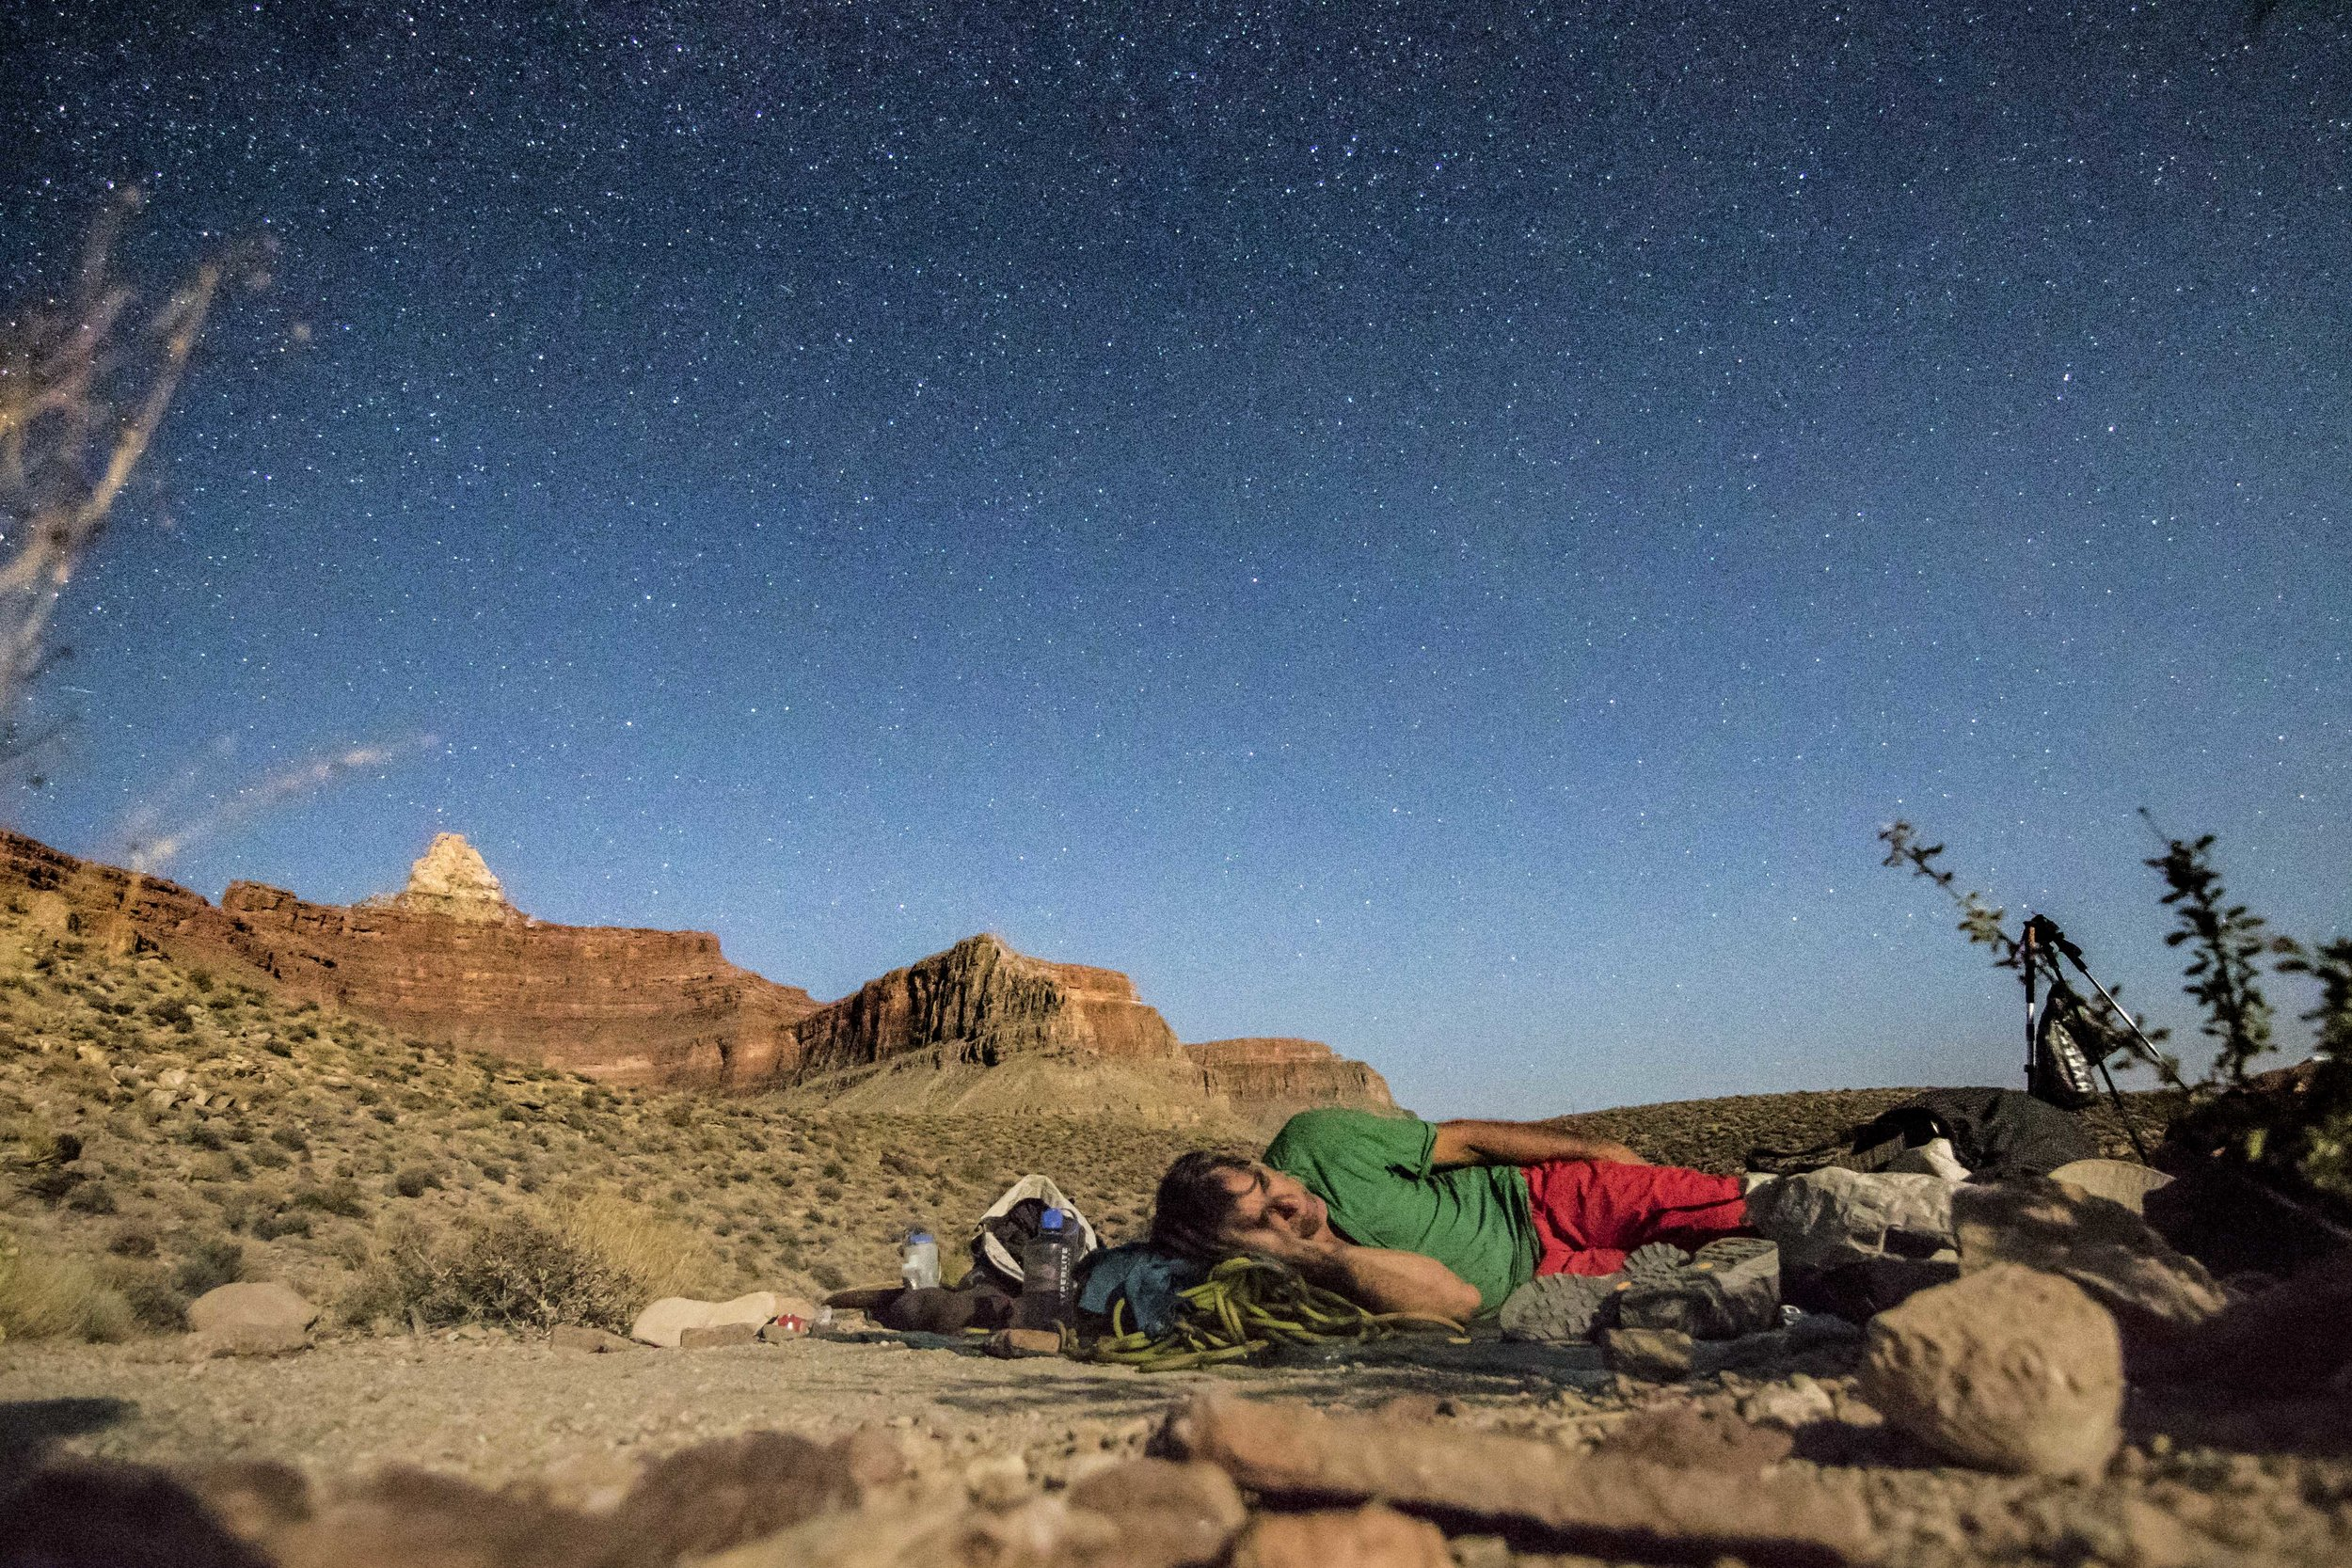 Paul fast asleep after a long day of hiking with Zoroaster's temple in the back;though it looks close, Zoroaster is still ~4 miles and over 3,000 vertical feet from where we are bivying